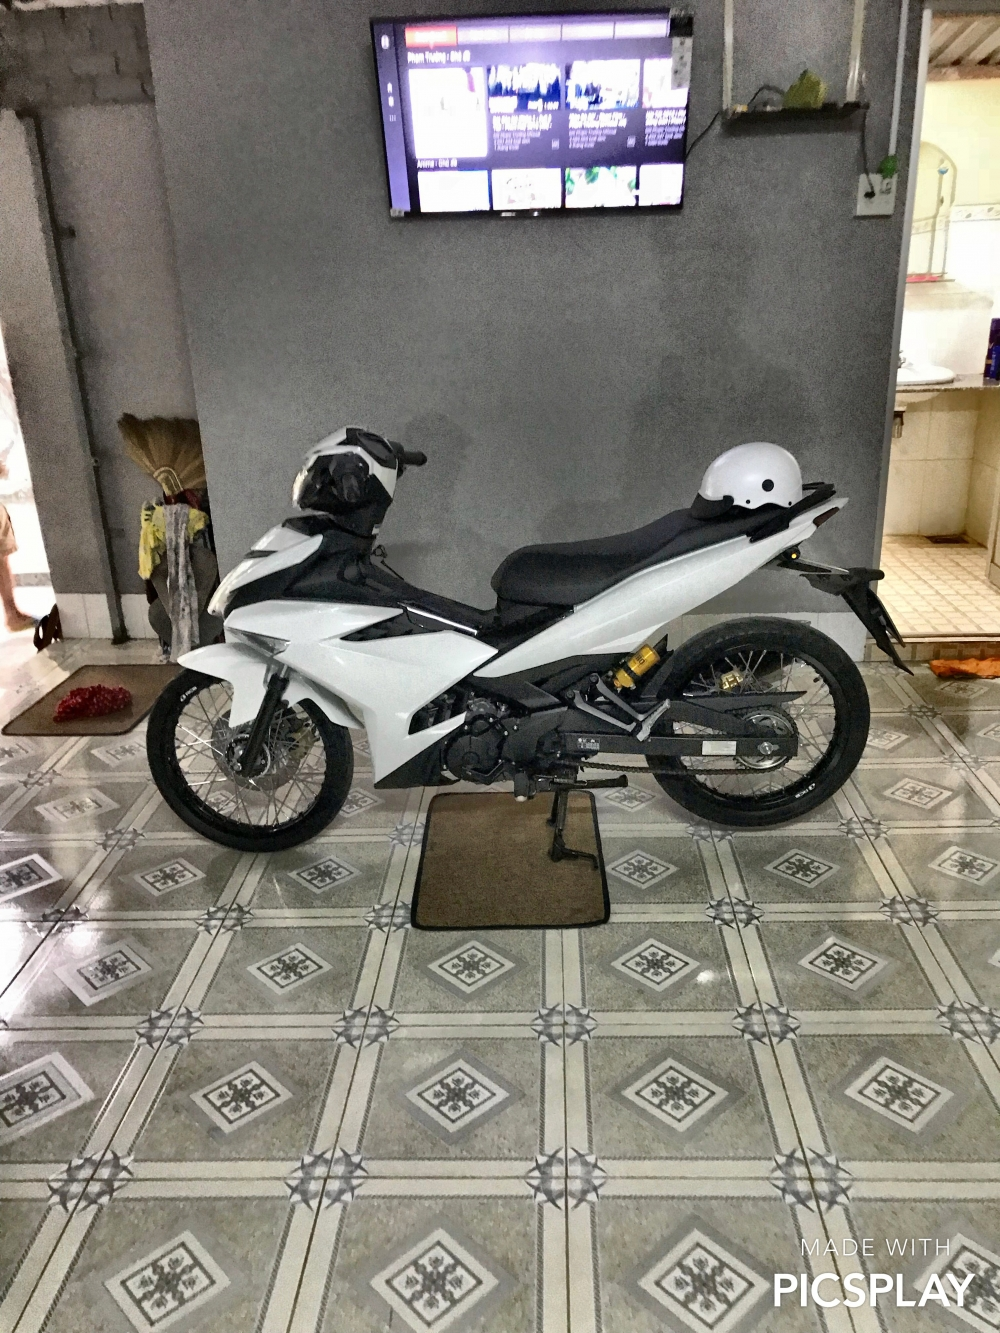 Exciter 150 bach ma cua biker Tien Giang - 3